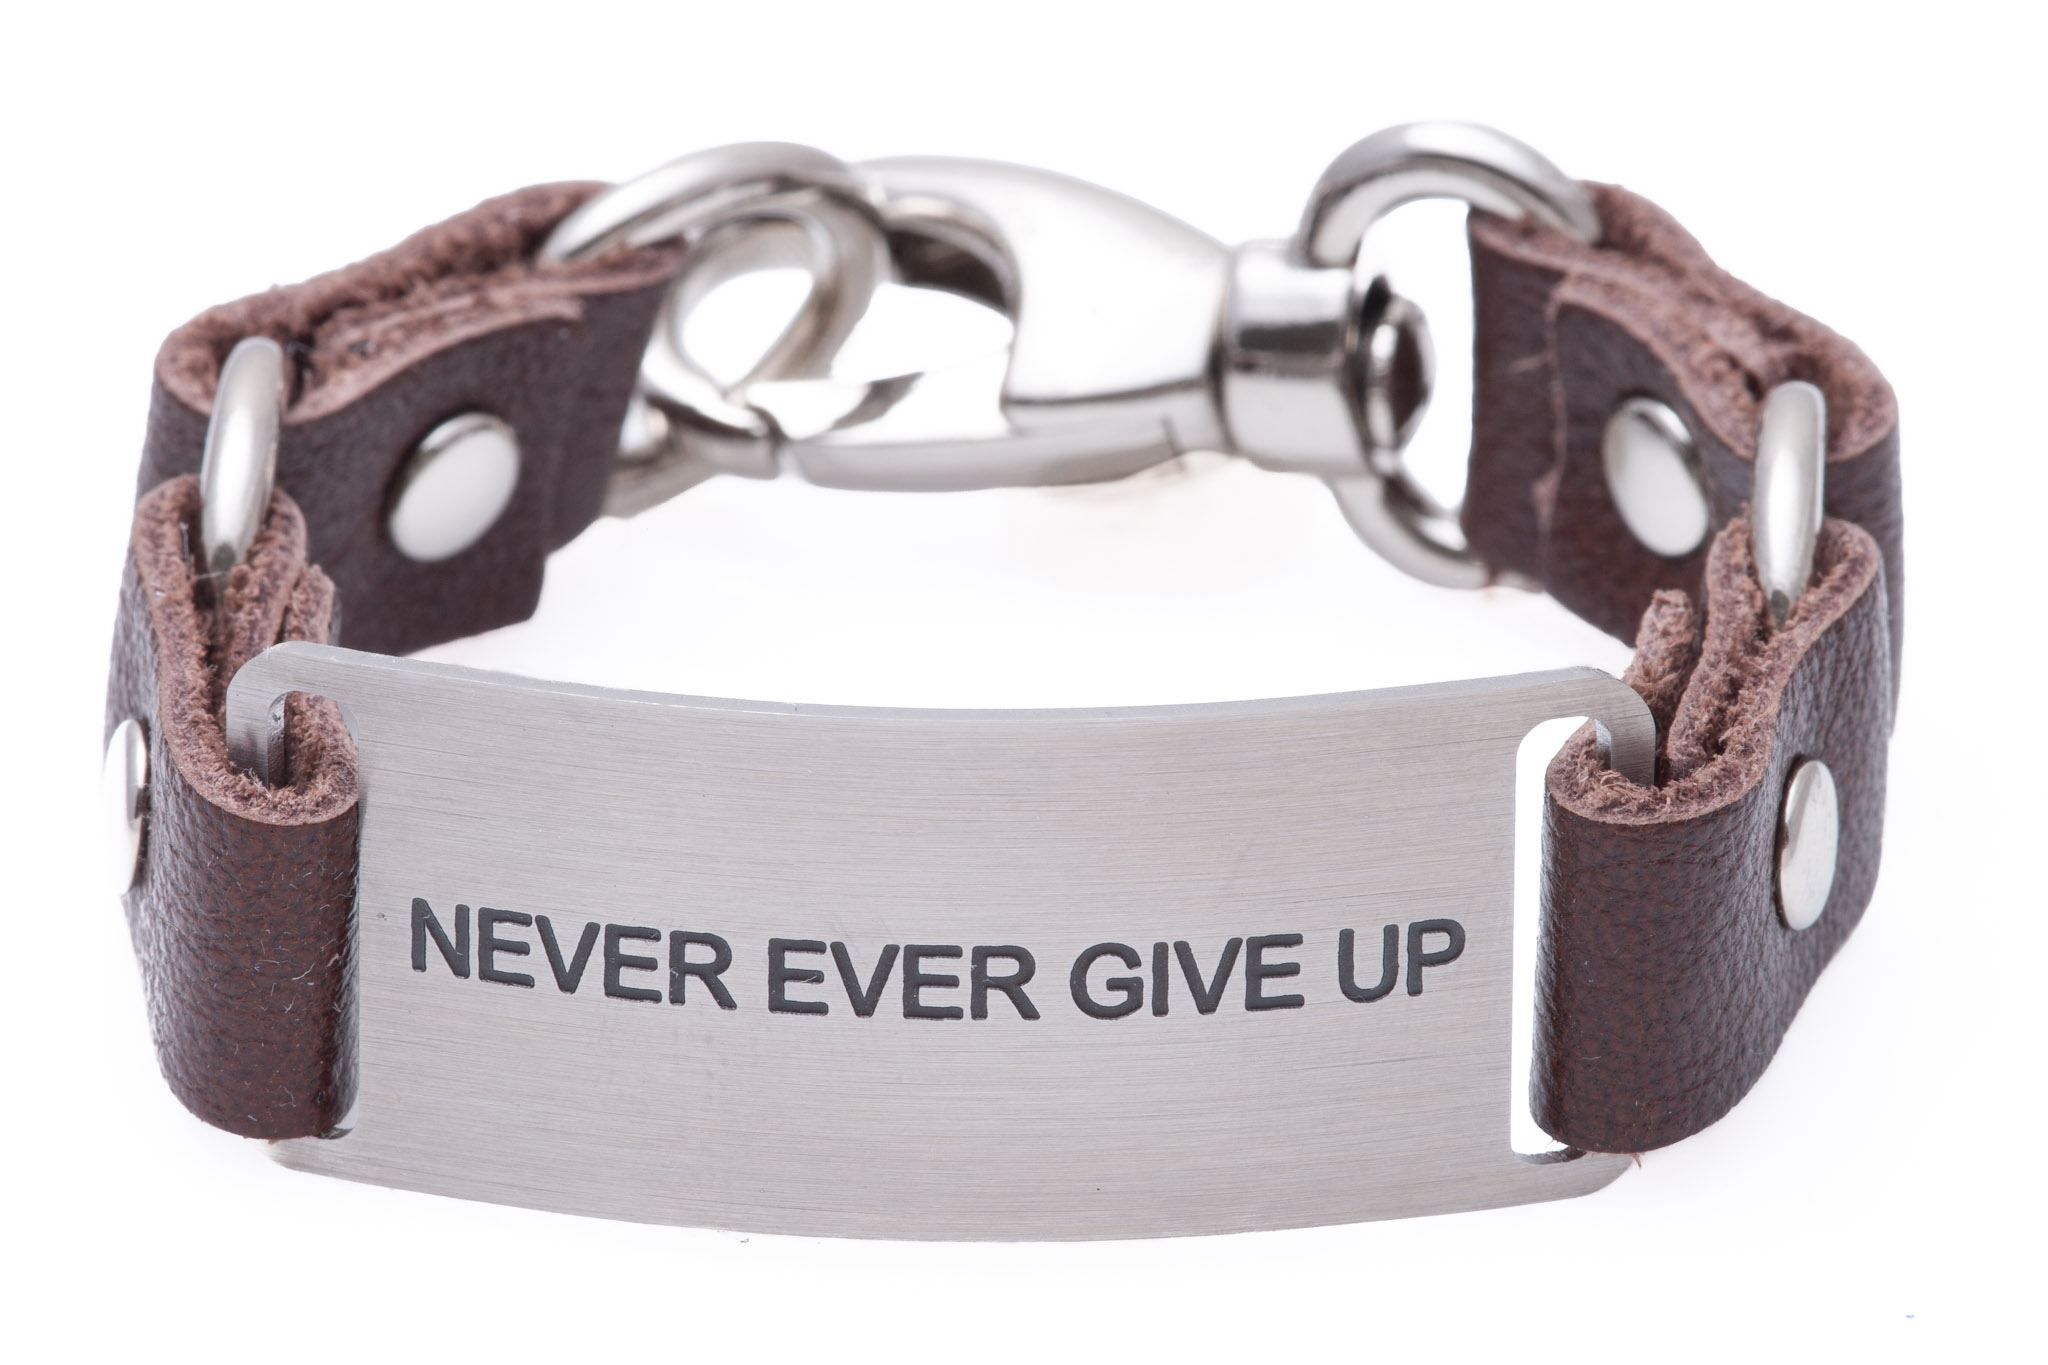 Load image into Gallery viewer, Message Bracelet Brown Leather Never Ever Give Up